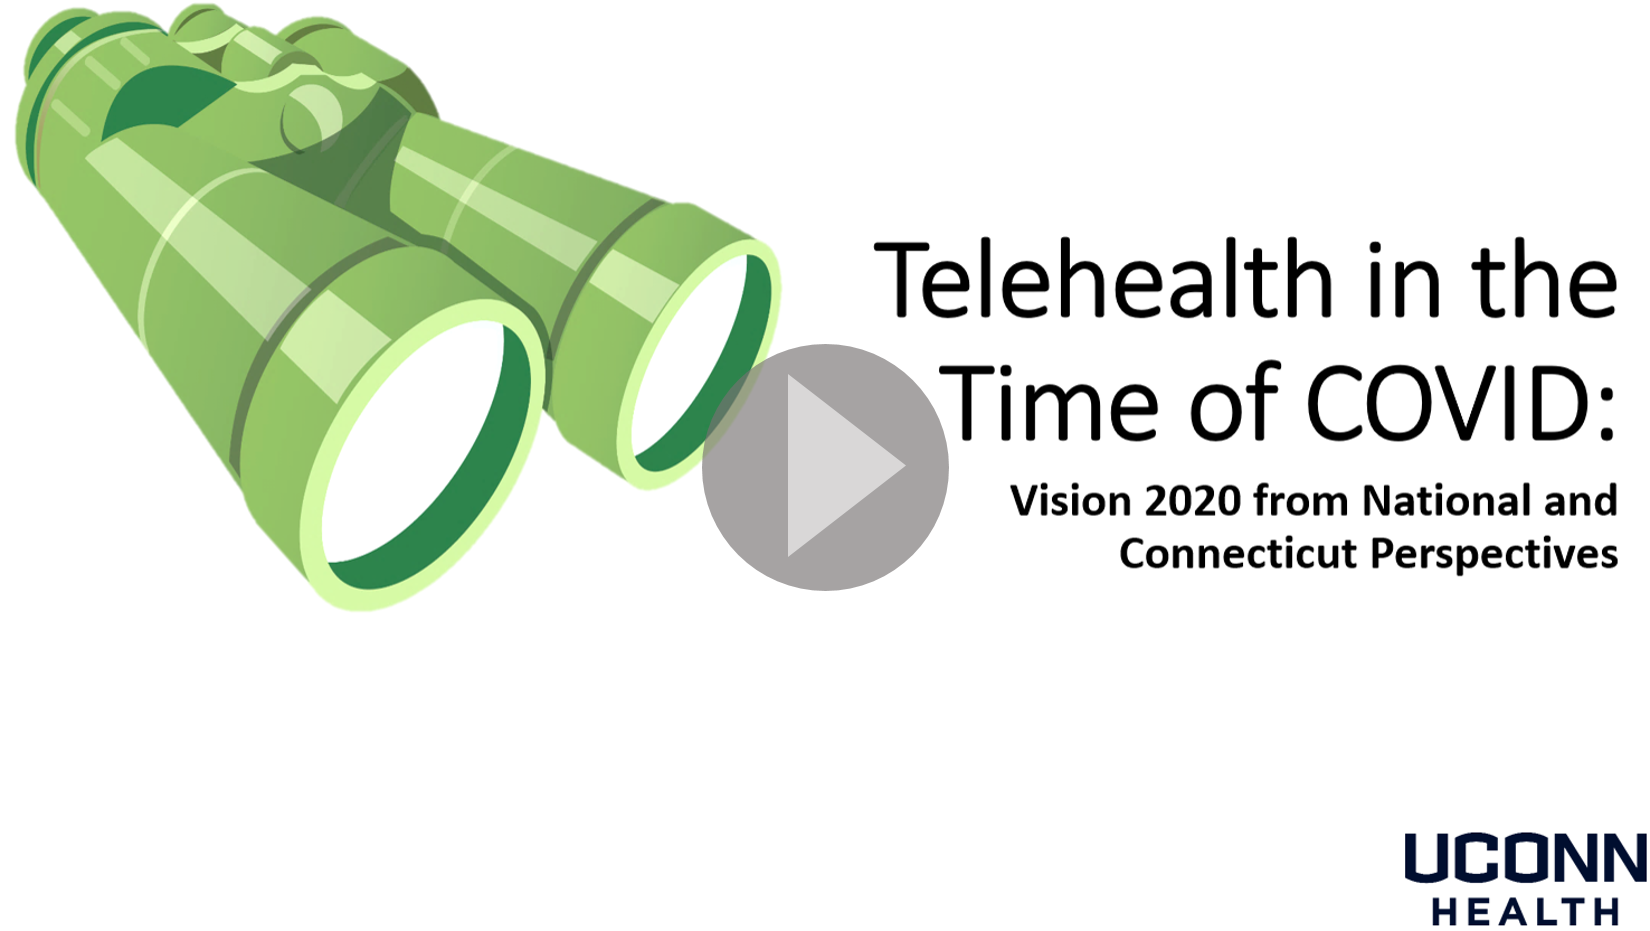 Telehealth in the Time of COVID Intro Slide